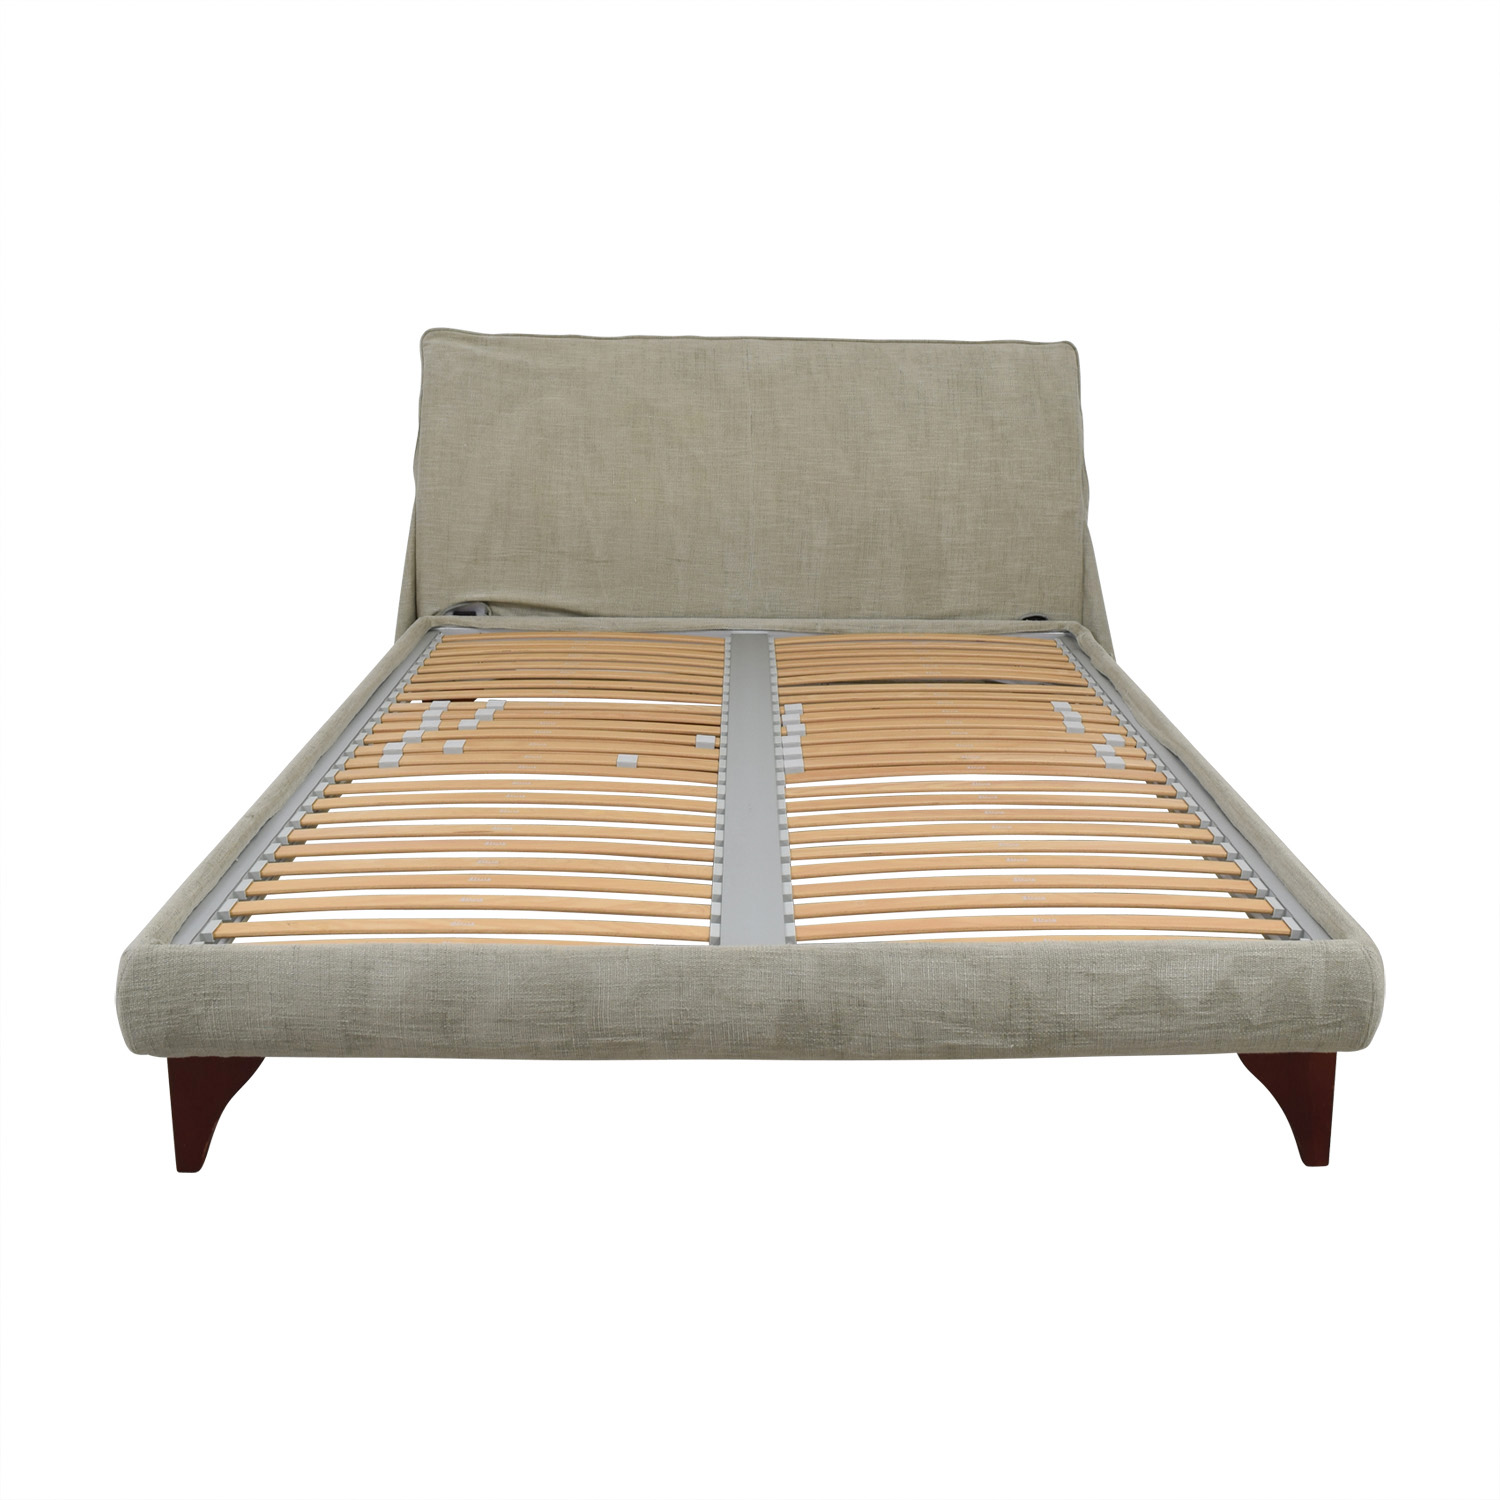 Flou Beige Queen Platform Bed Frame / Beds